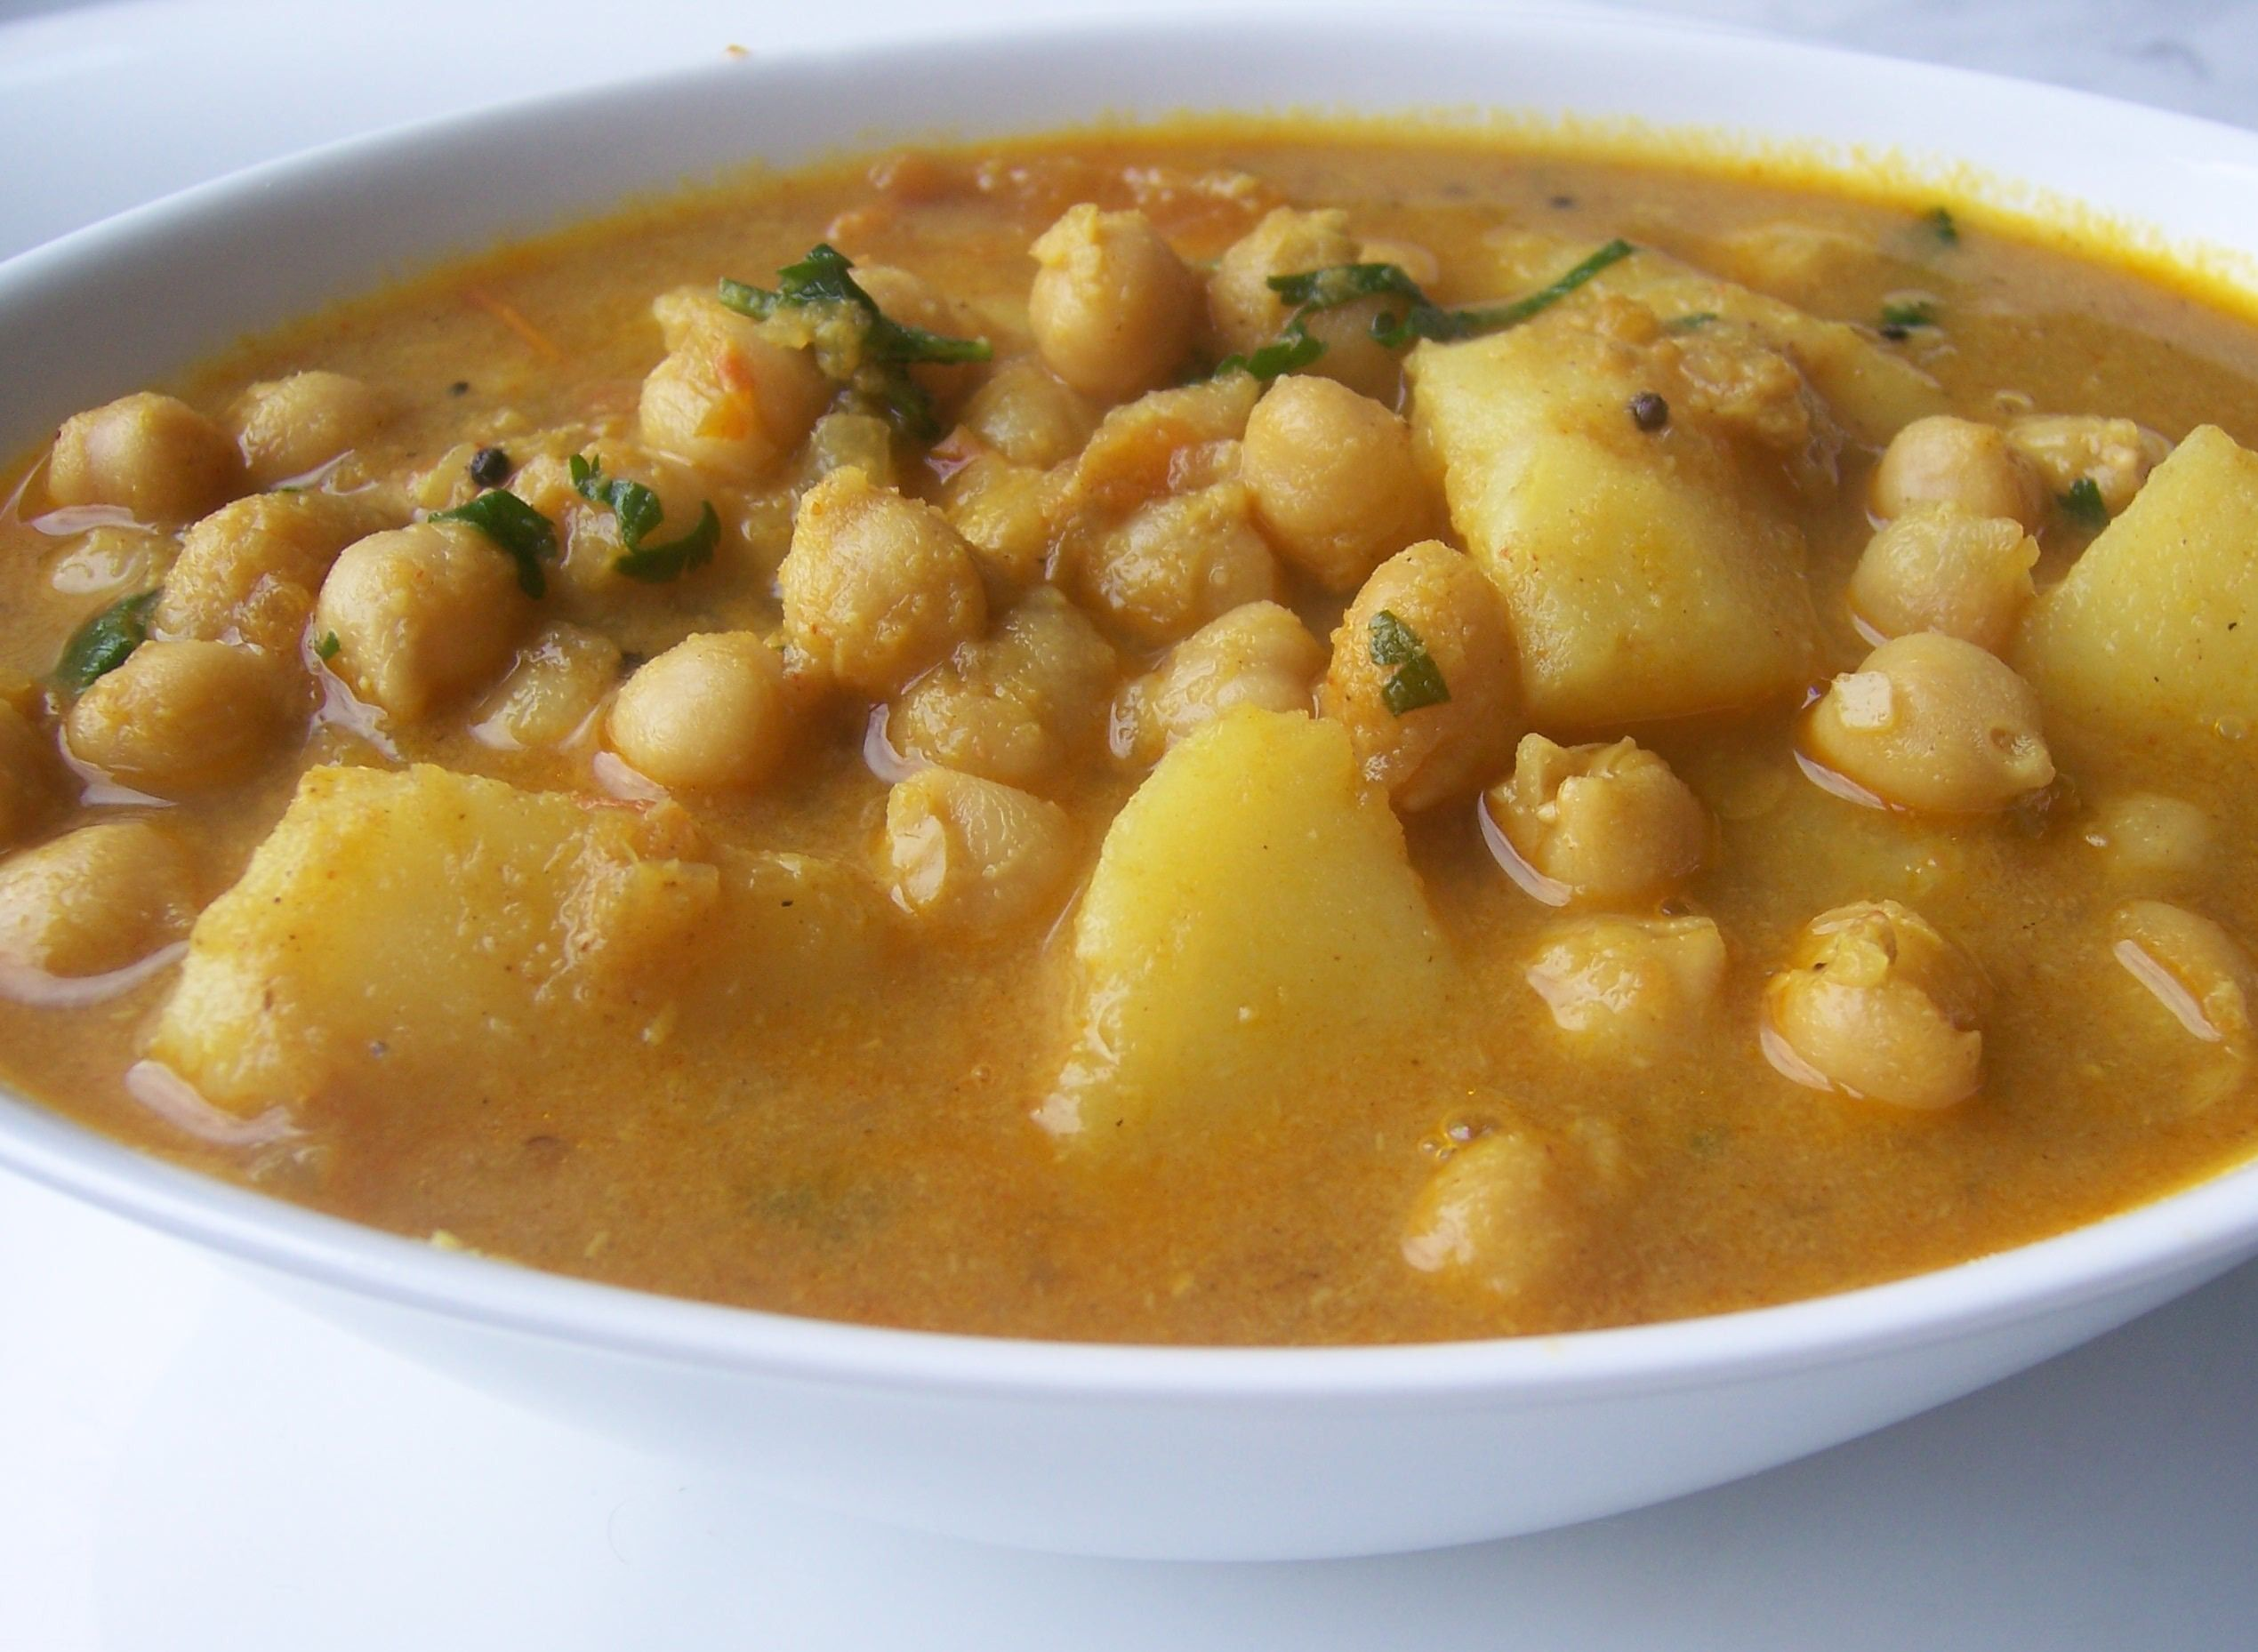 Aloo chana curry recipe potato chickpeas curry indian food aloo chana curry recipe potato chickpeas curry chickpea curryindian food forumfinder Image collections